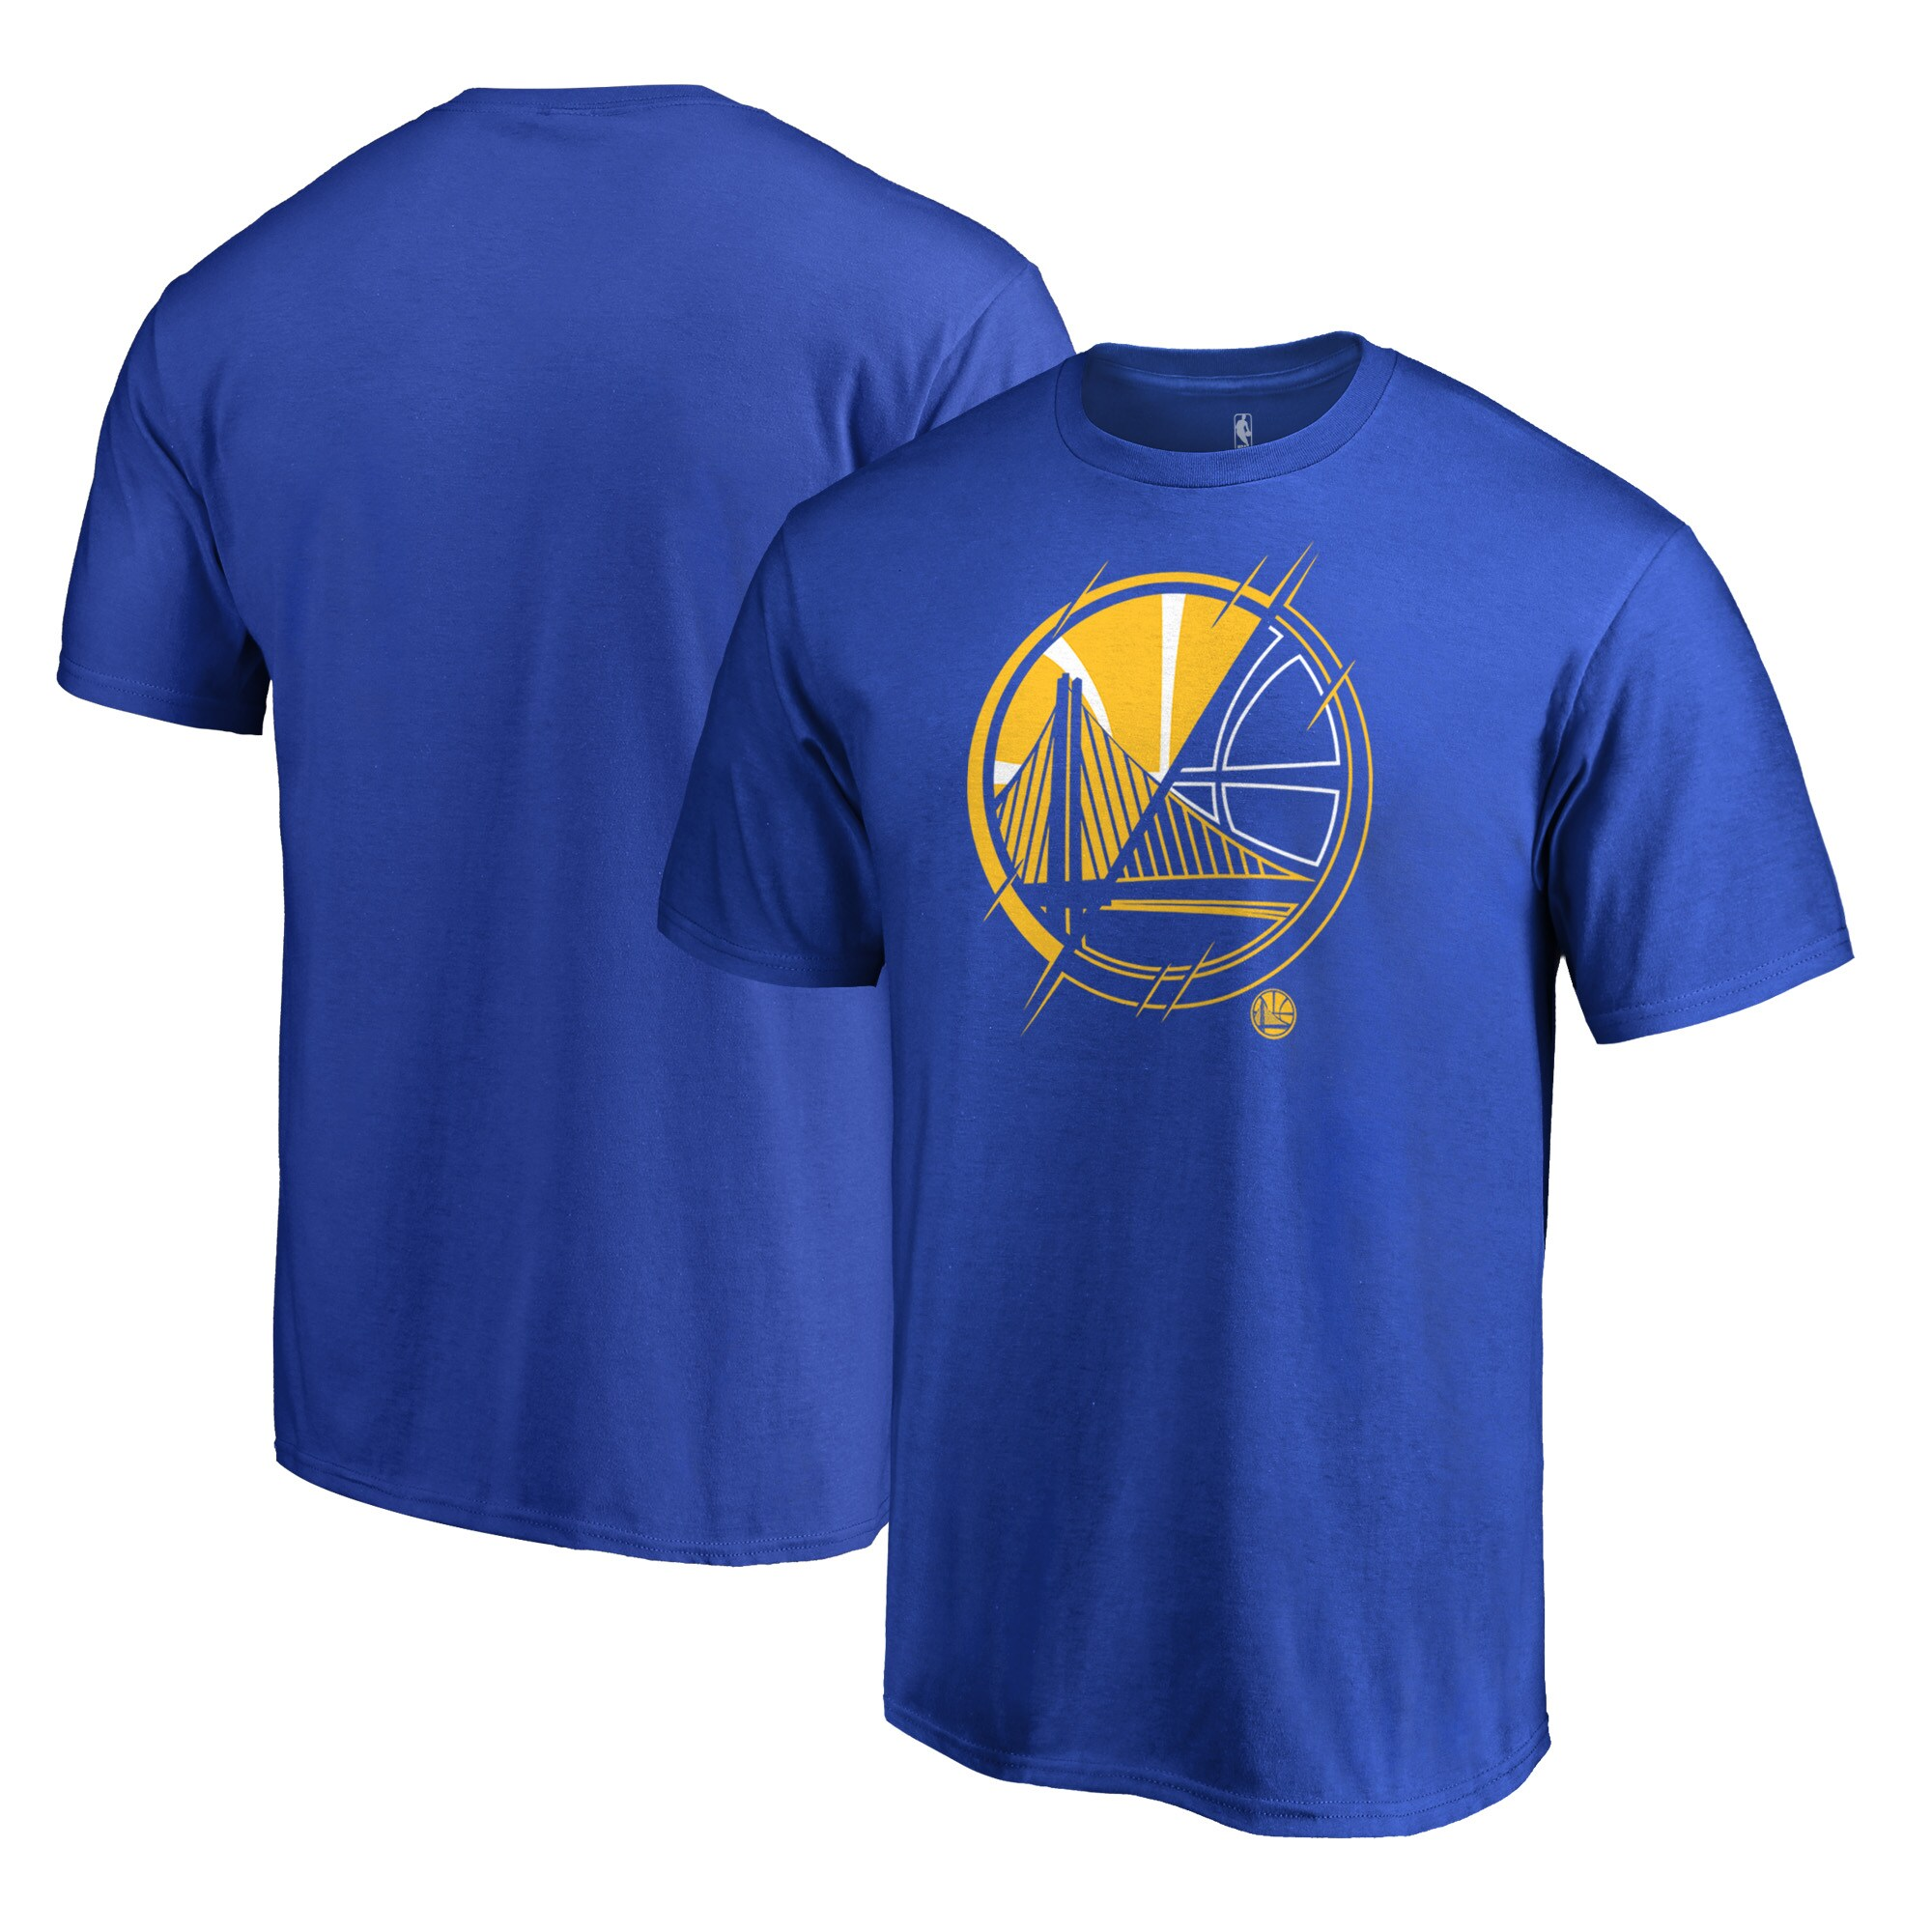 Golden State Warriors Fanatics Branded X-Ray Big and Tall T-Shirt - Blue